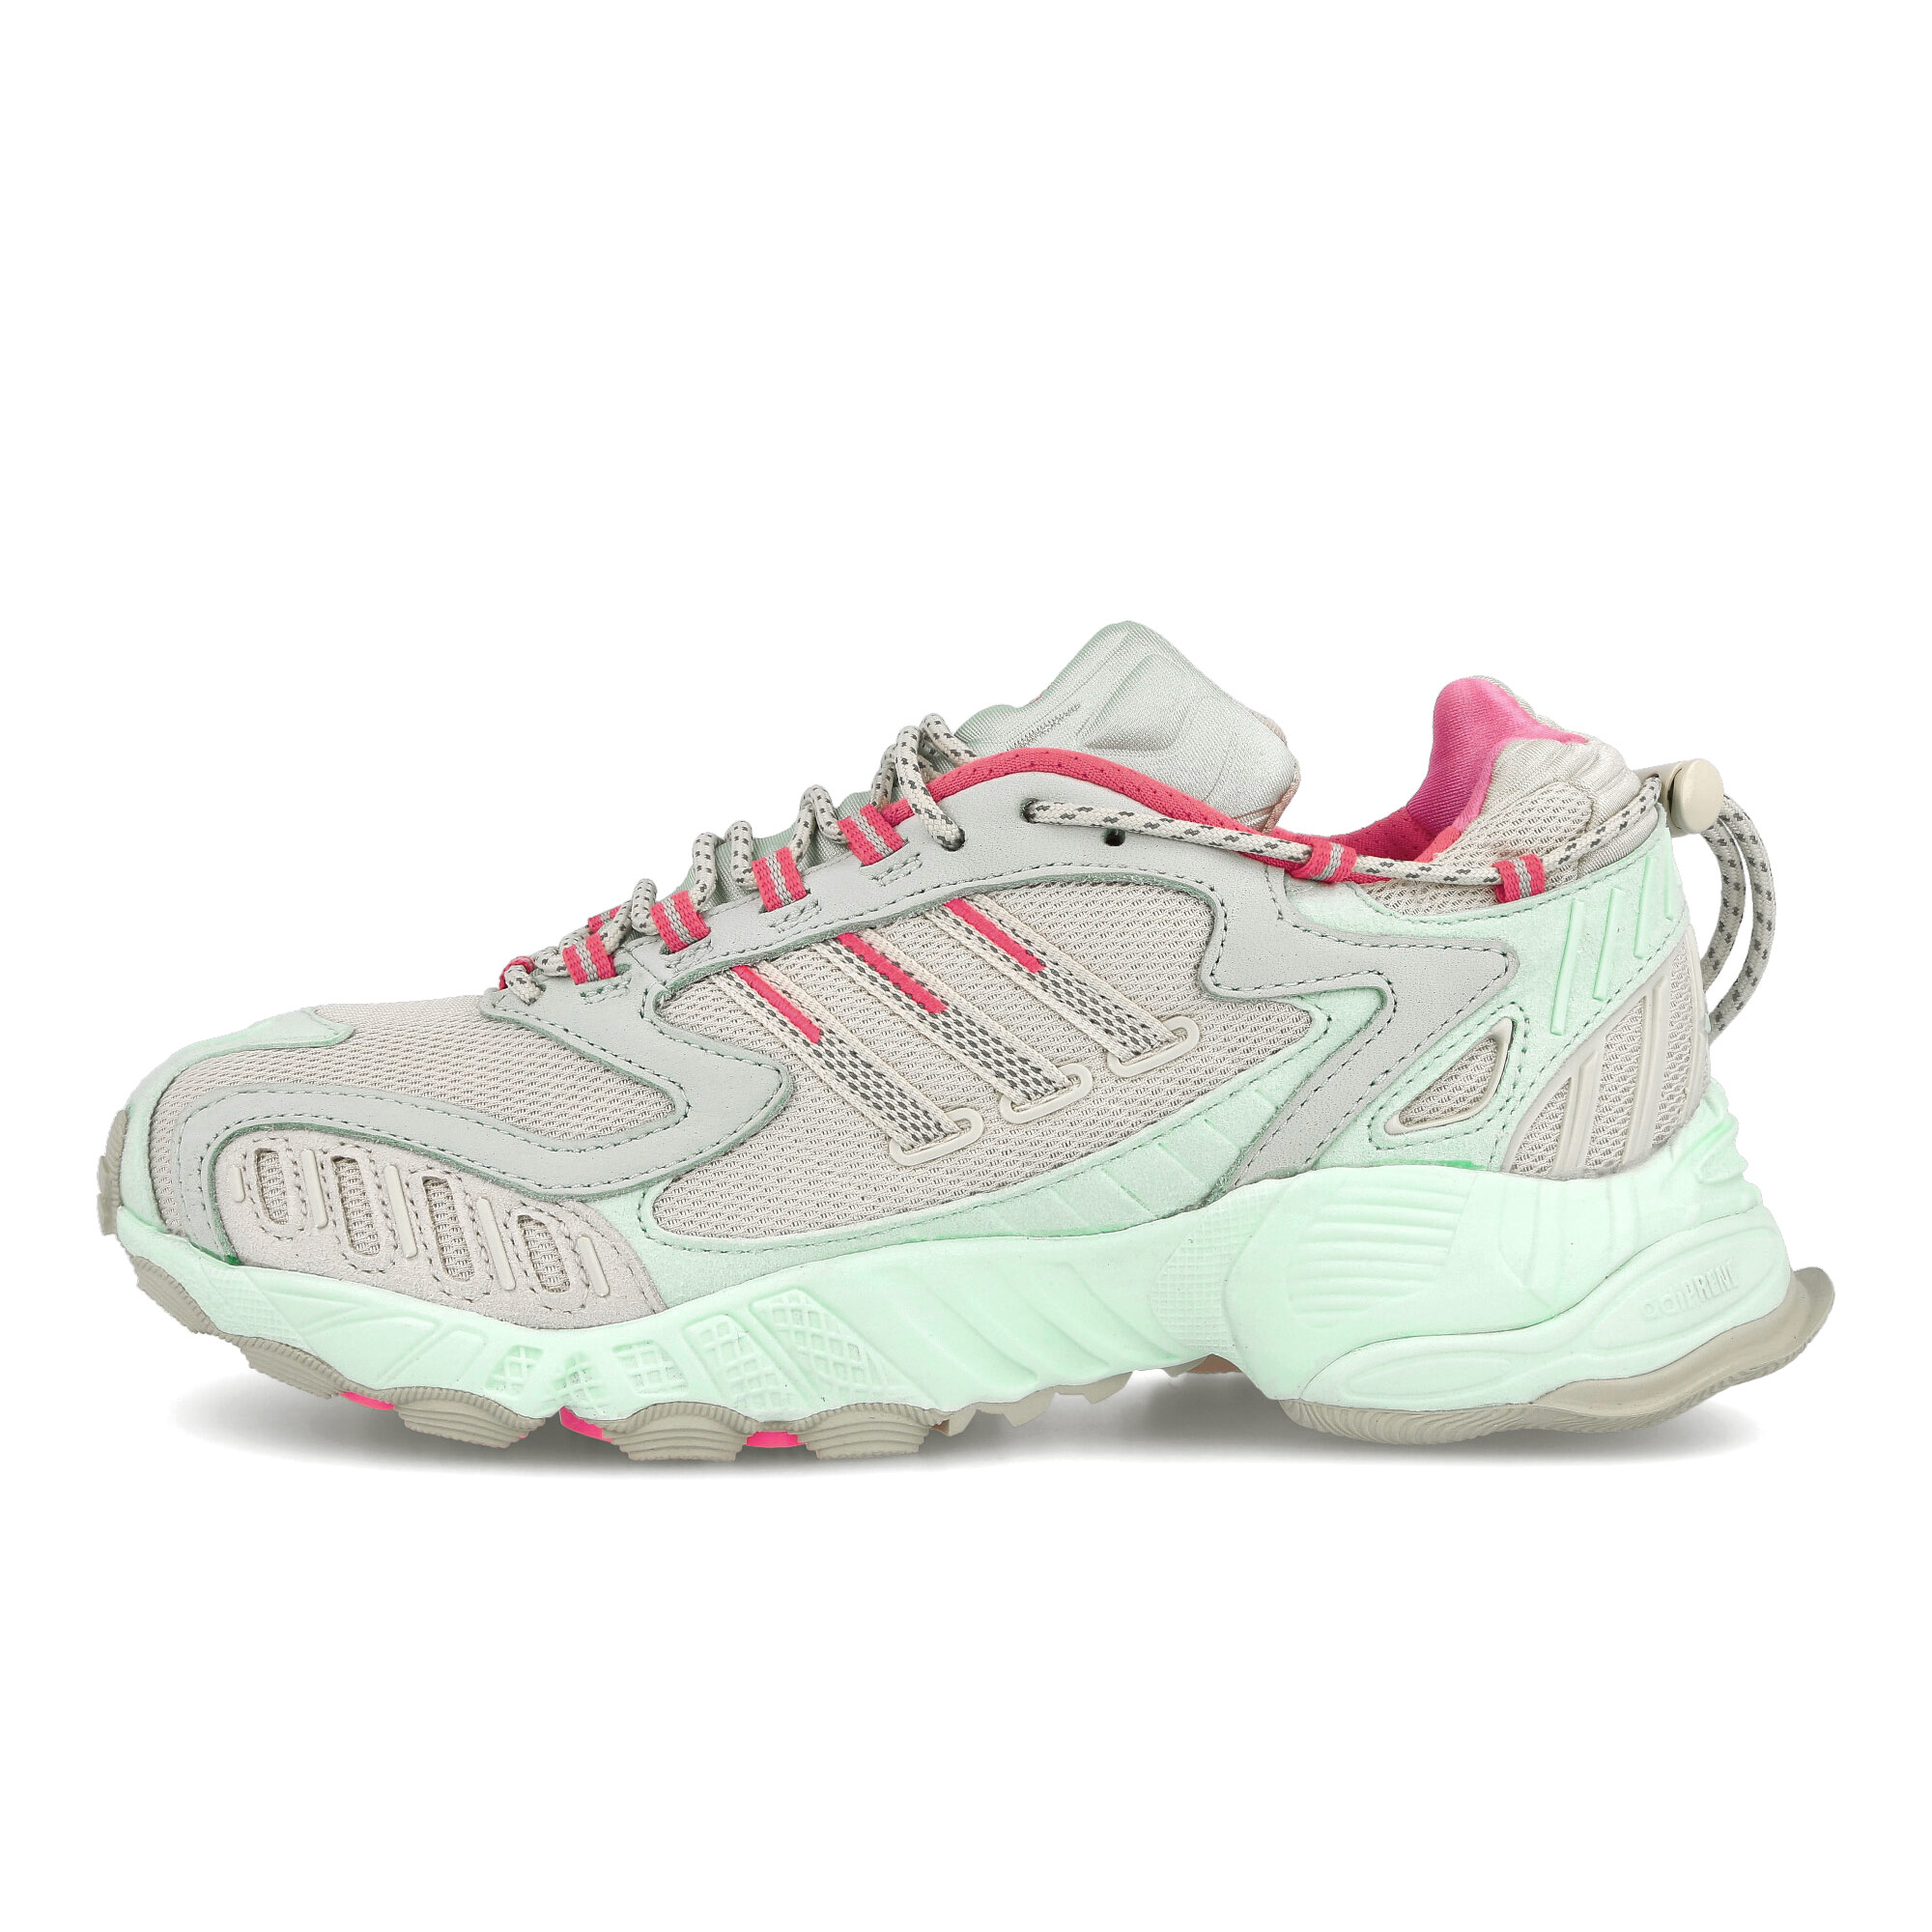 adidas Torsion TRDC W Ice Mint/ Silver Metalic/ Aluminium - FV1007